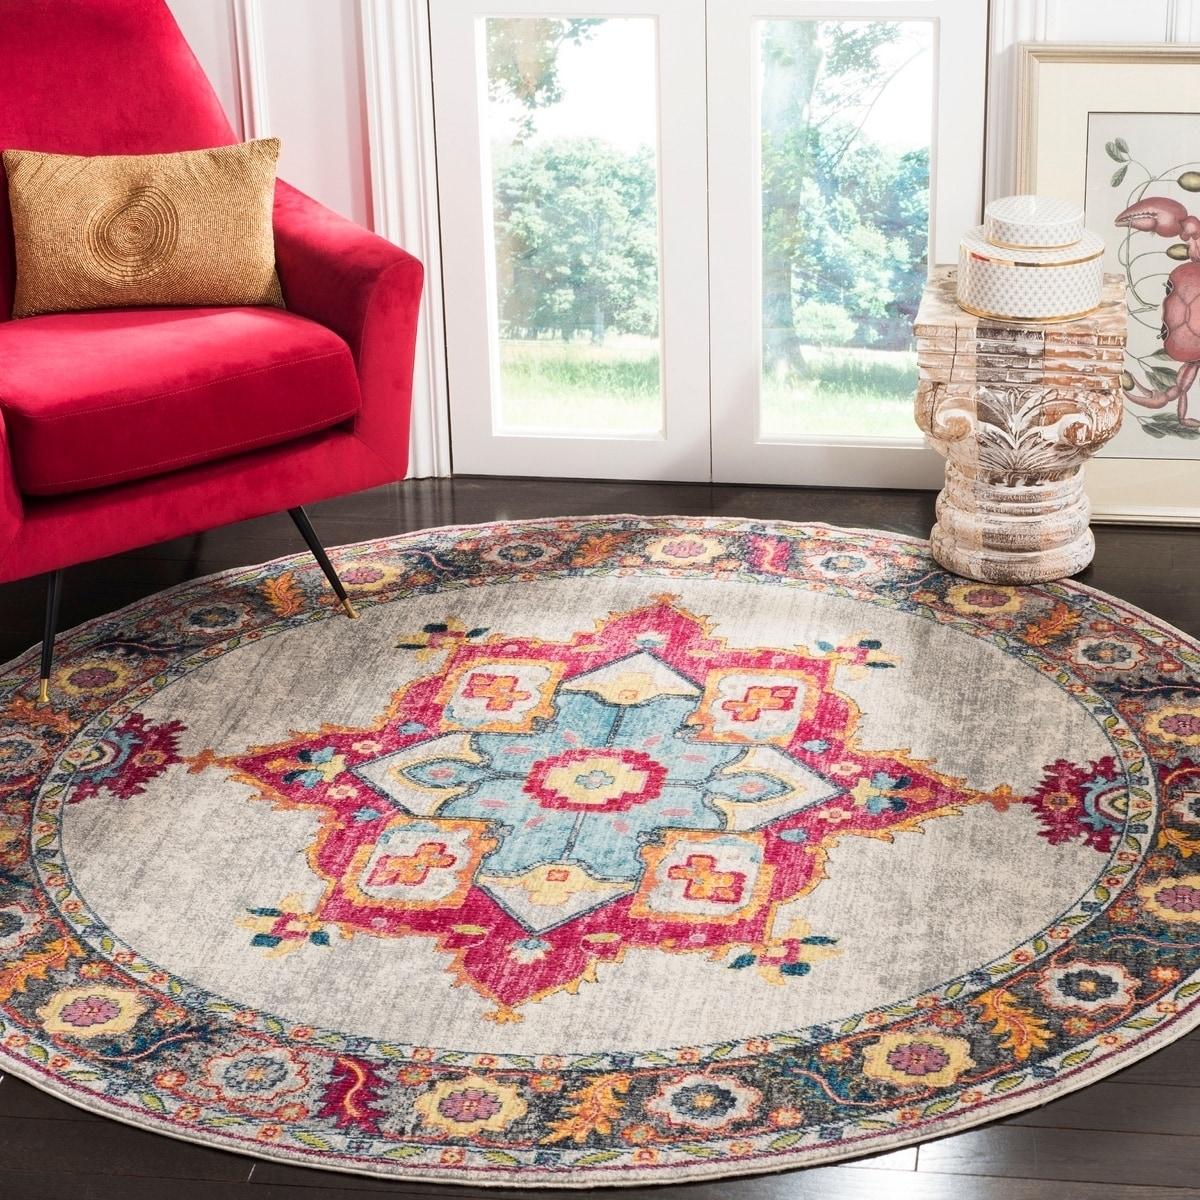 Shop Safavieh Merlot Modern Contemporary Cream Multi Rug 6 7